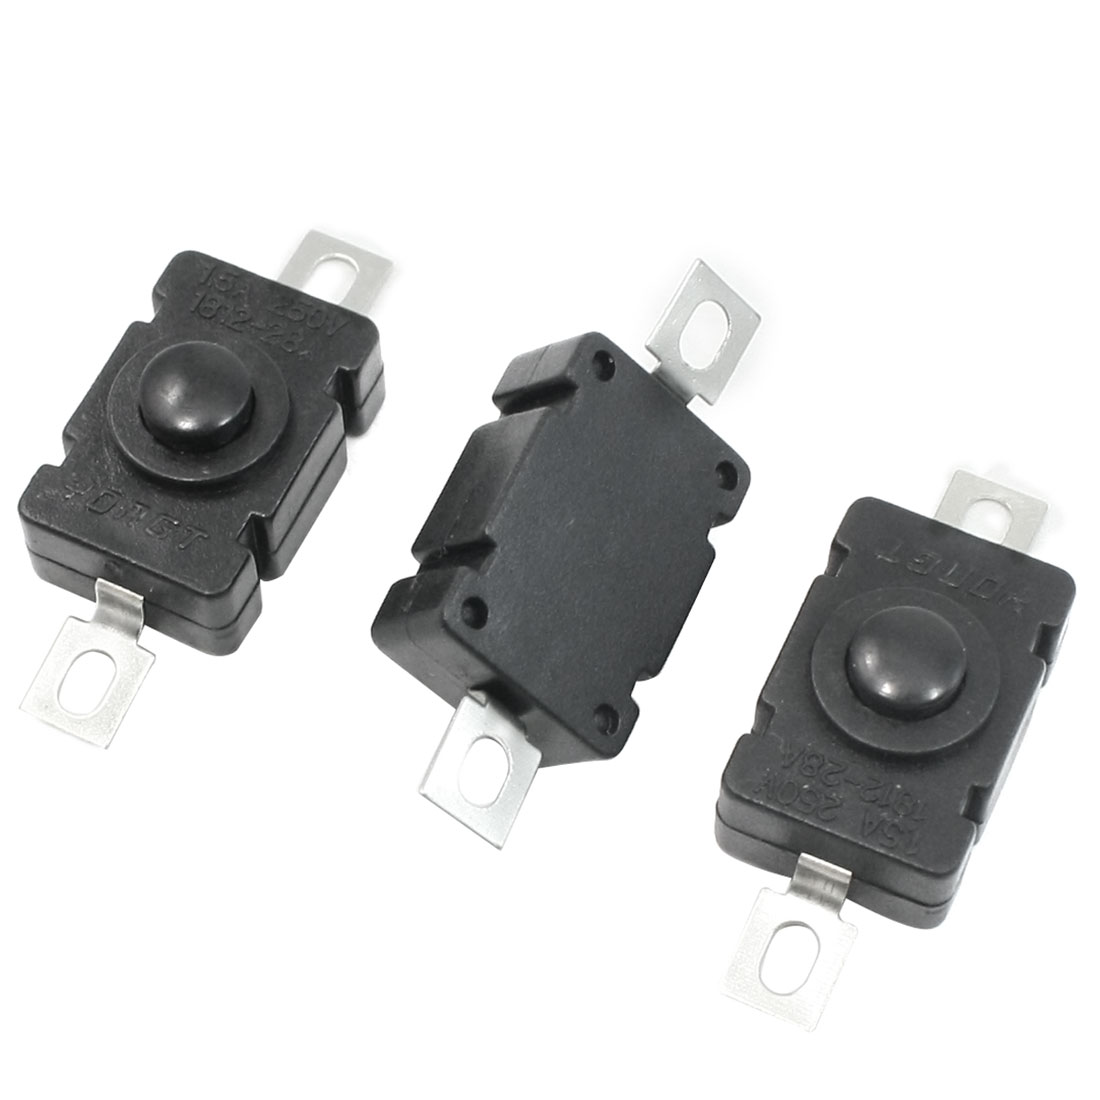 AC 250V 1.5A Horizontal Latching Flashlight Push Button Switch 3 Pcs